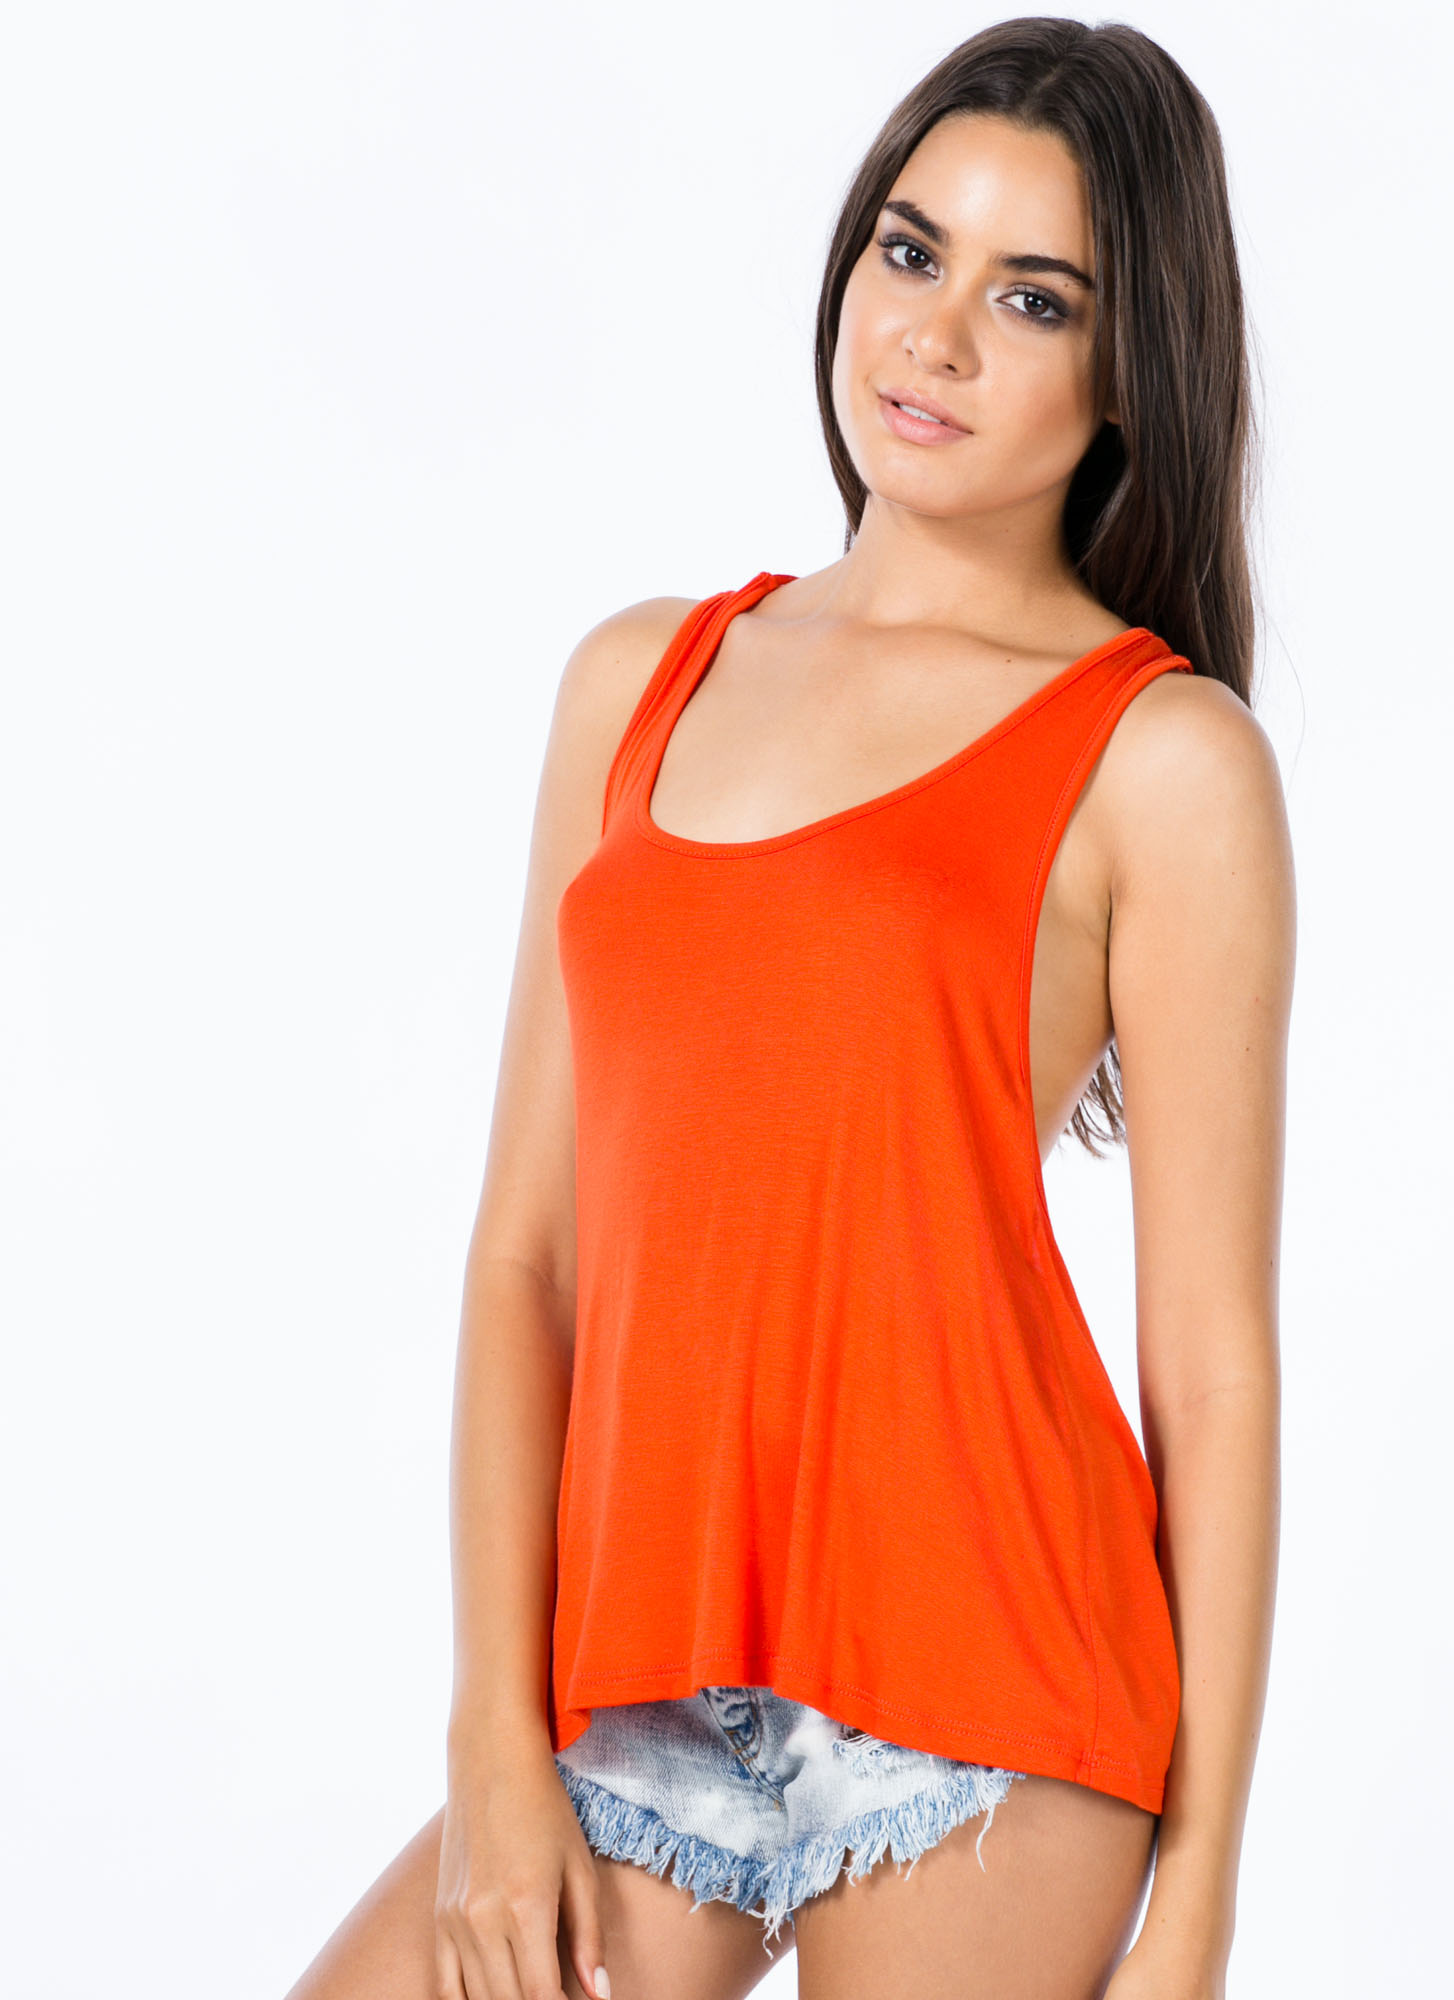 Knotty Girl Tank Top ORANGE